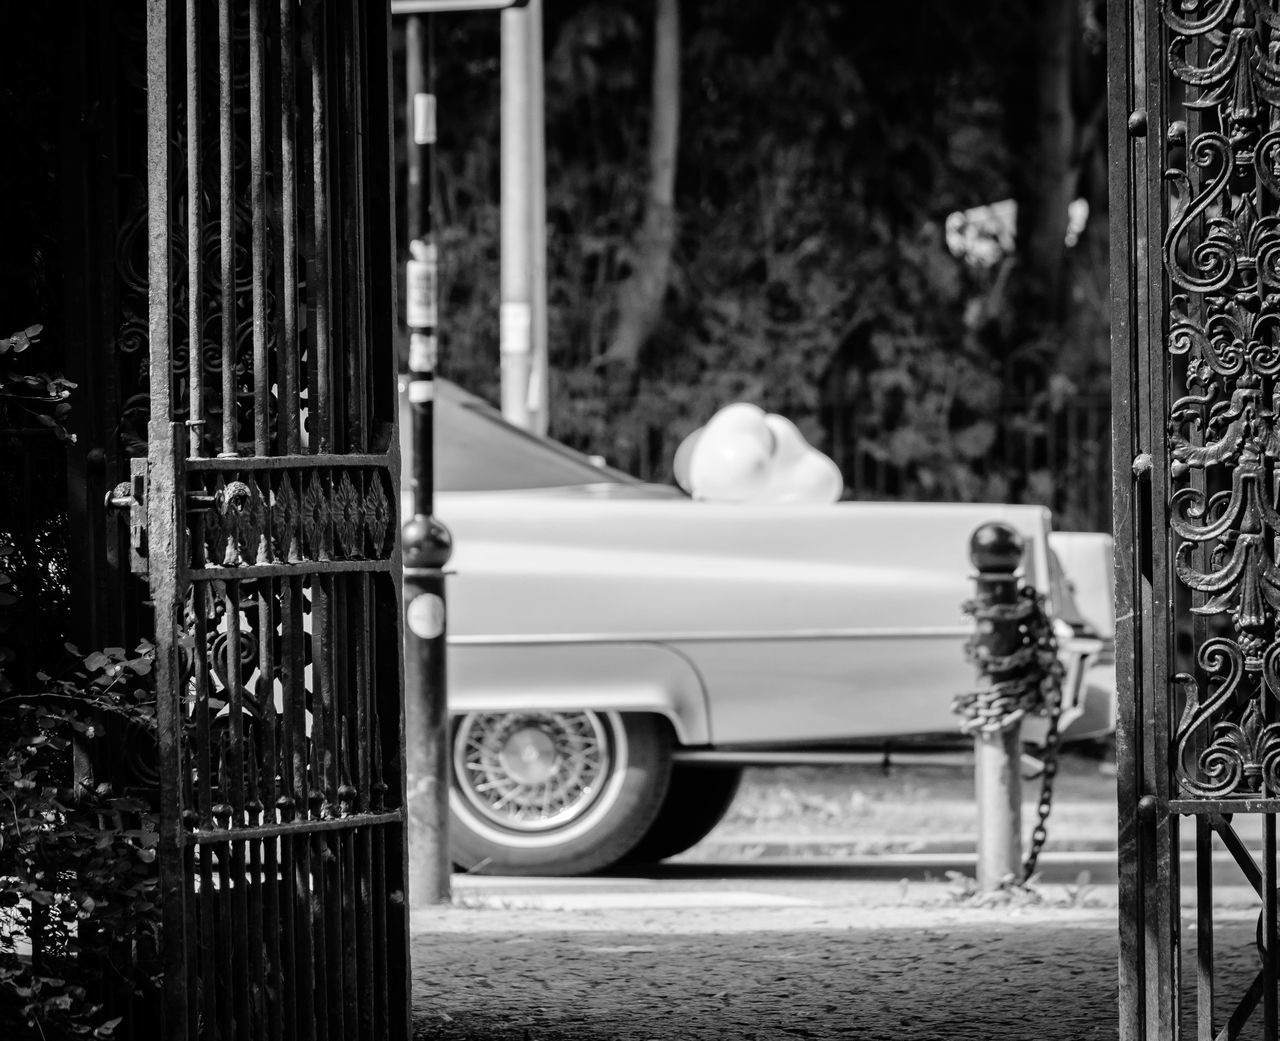 particular ways.. Auto Blackandwhite Bnw Car Classic Car Daylight EyeEm Best Shots - Black + White Fence Focus On Foreground From My Point Of View Full Length Gate Light And Shadow Mode Of Transport Schwarzweiß Selective Focus Side View Street Streetphoto_bw Streetphotography Tor Transportation US Car Vehicle Zaun